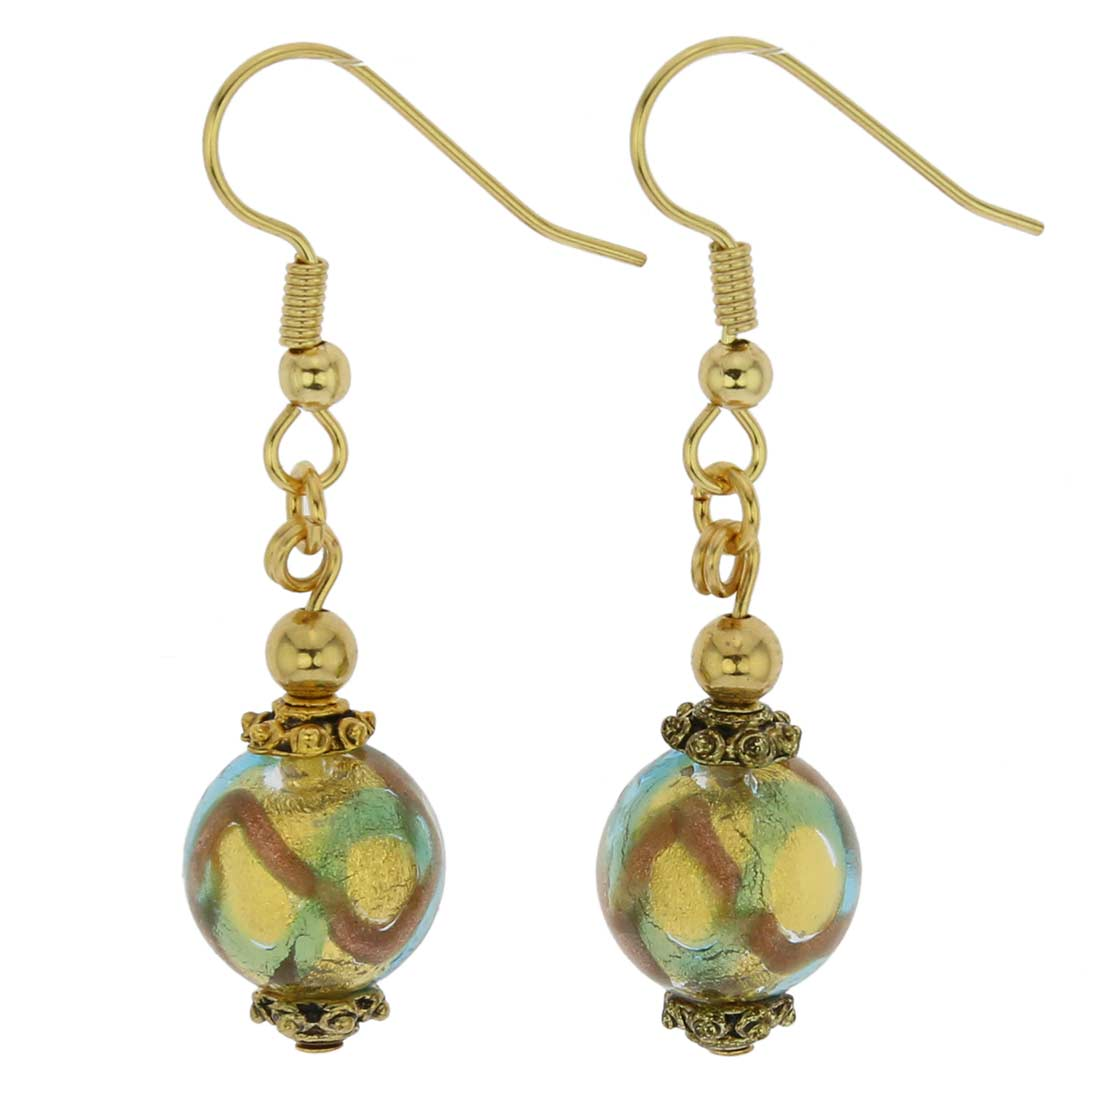 Antico Tesoro Balls Earrings - Gold and Aqua